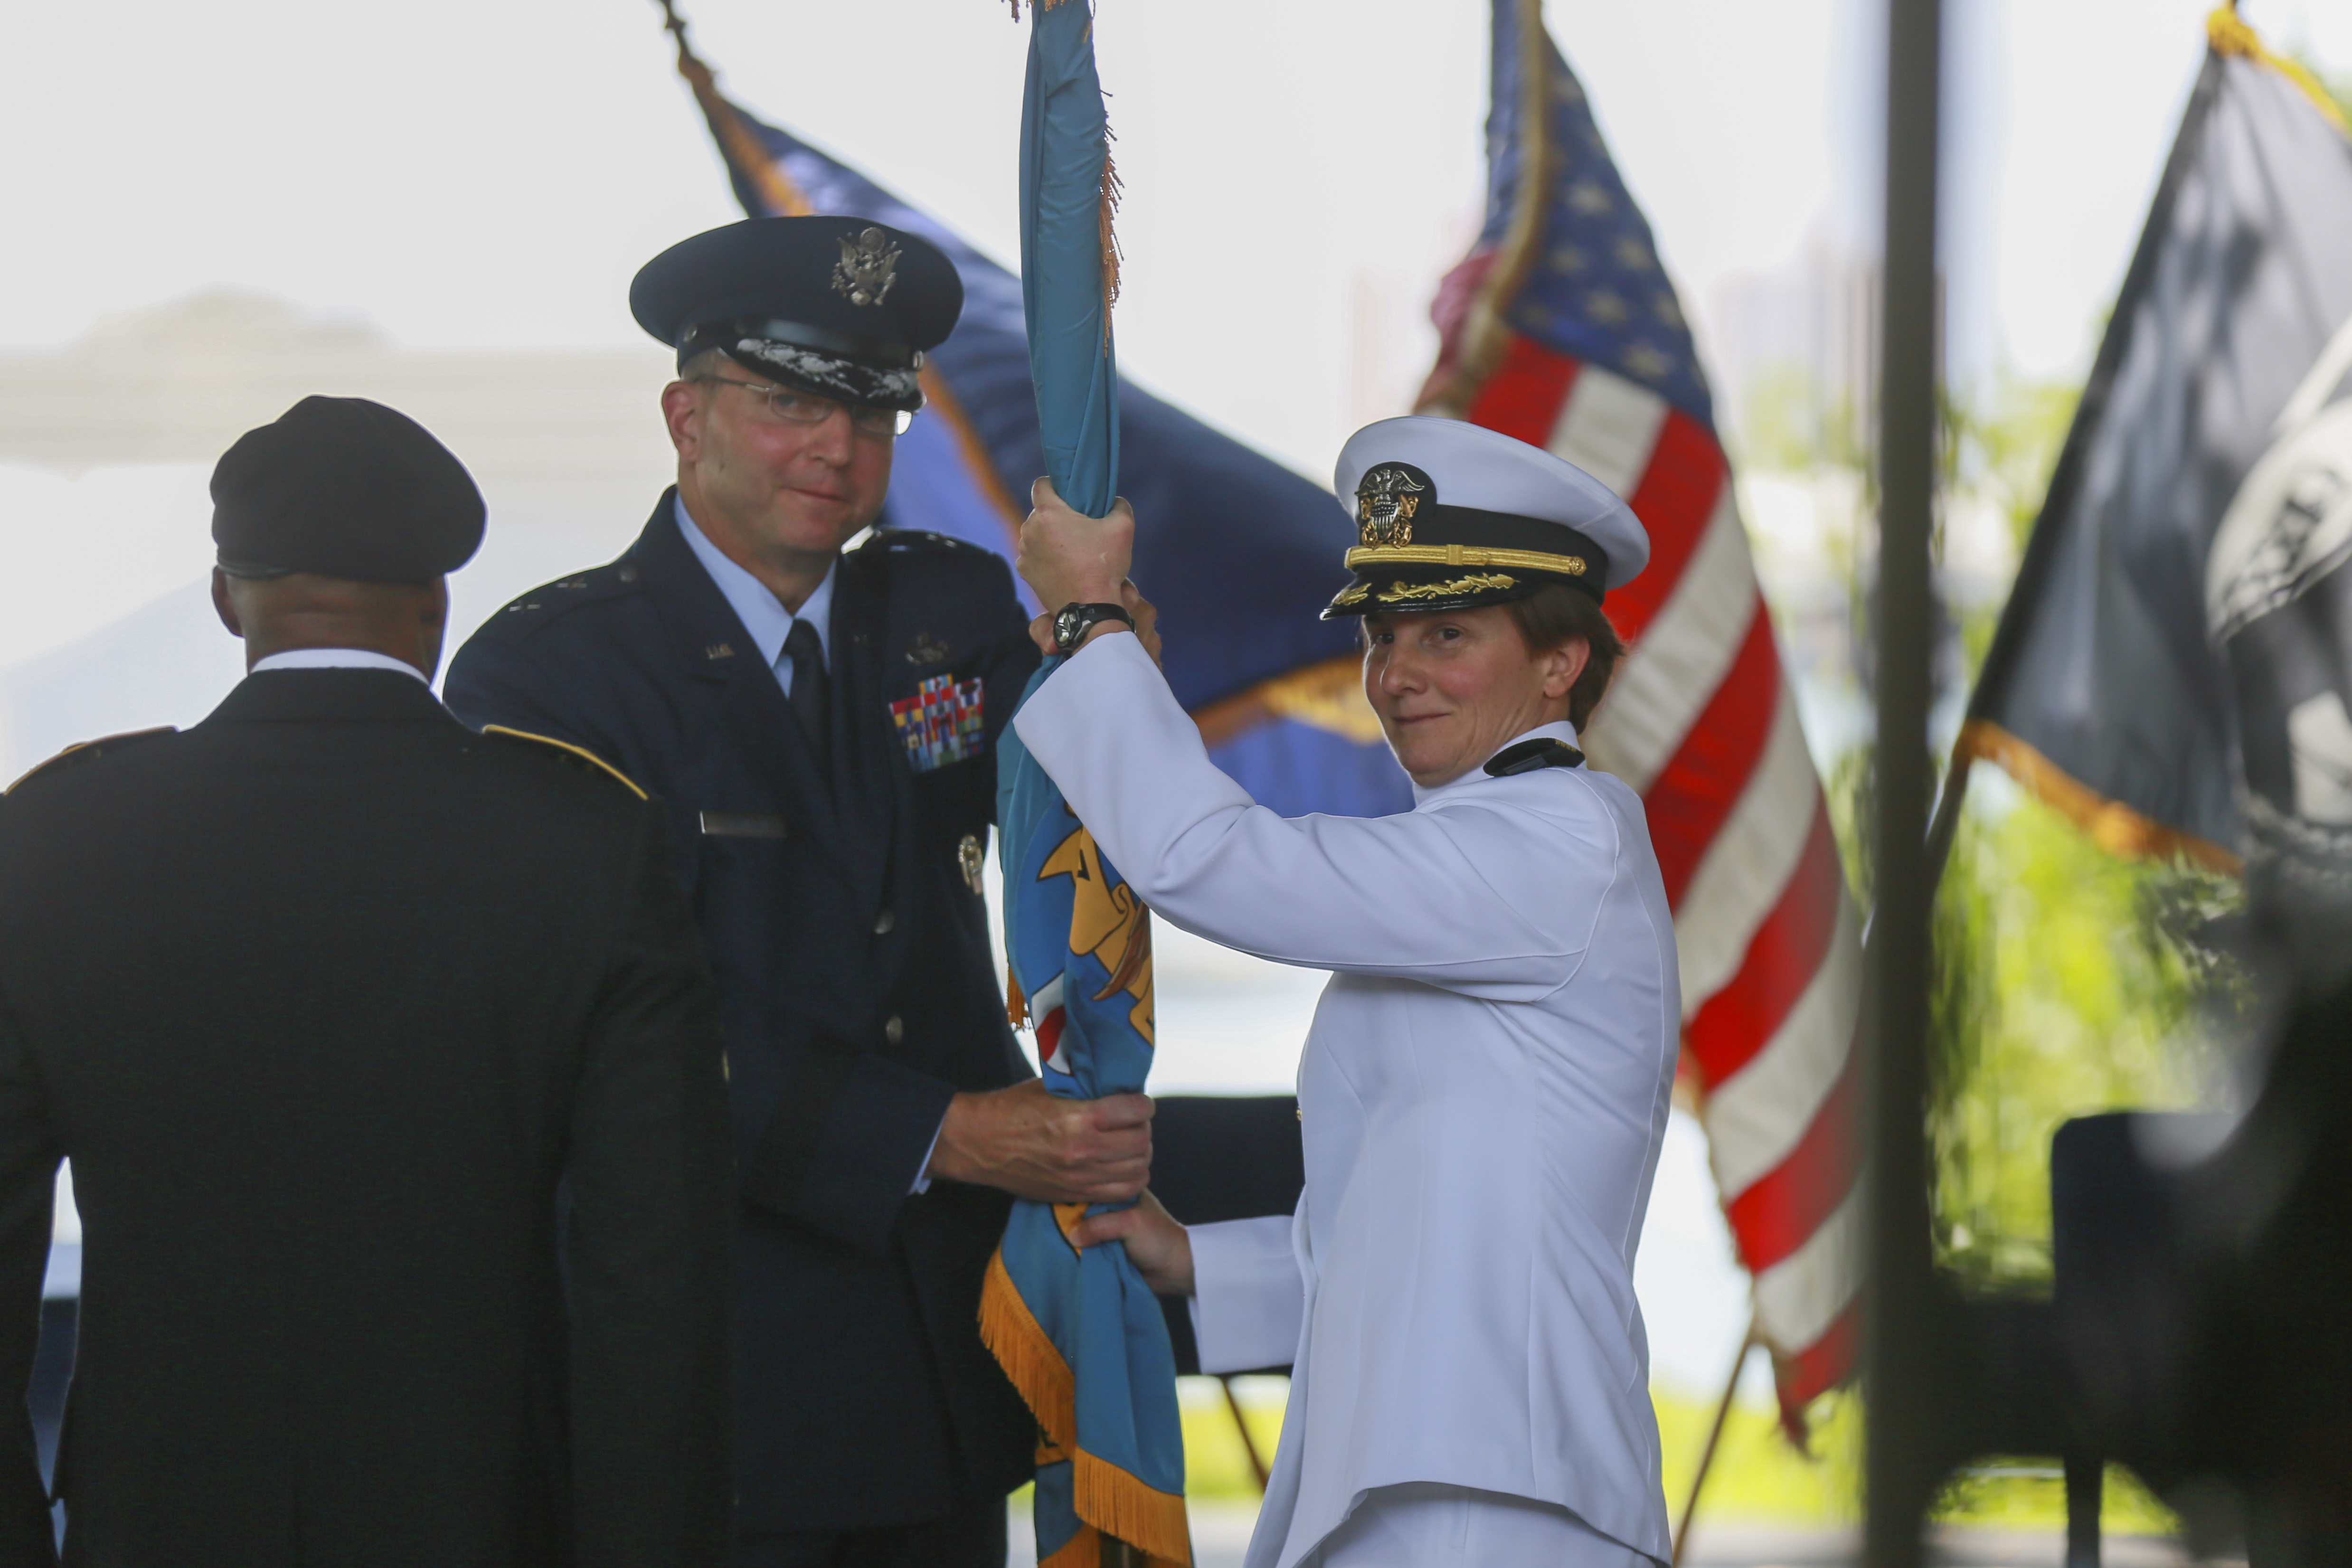 Air Force major general passing official flag to Navy captain, both in Class A uniforms